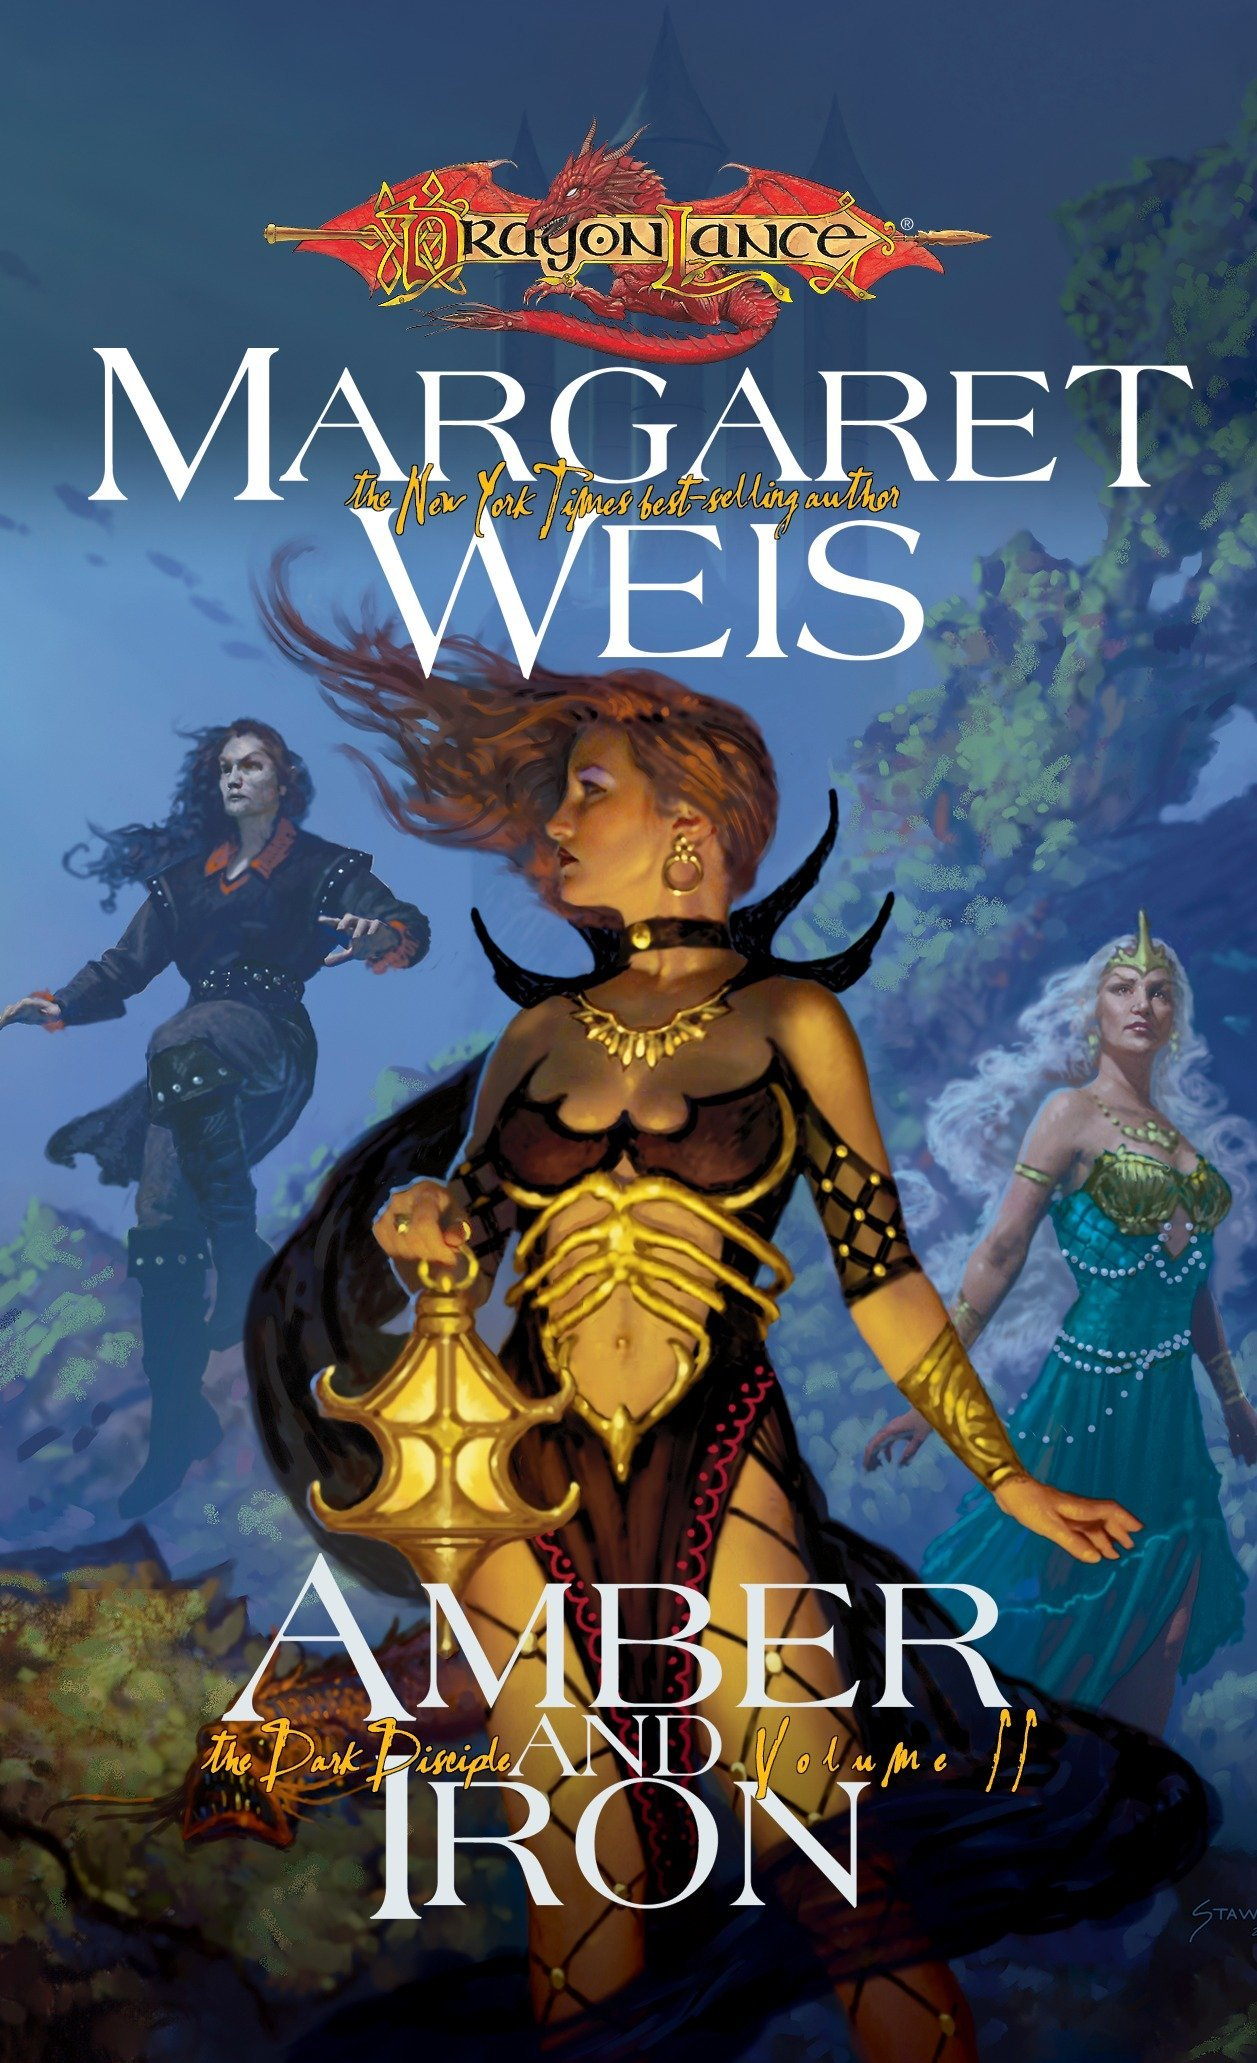 Amazon.com: Amber and Iron (Dragonlance: The Dark Disciple, Vol. 2) (v. 2)  (9780786940868): Margaret Weis: Books